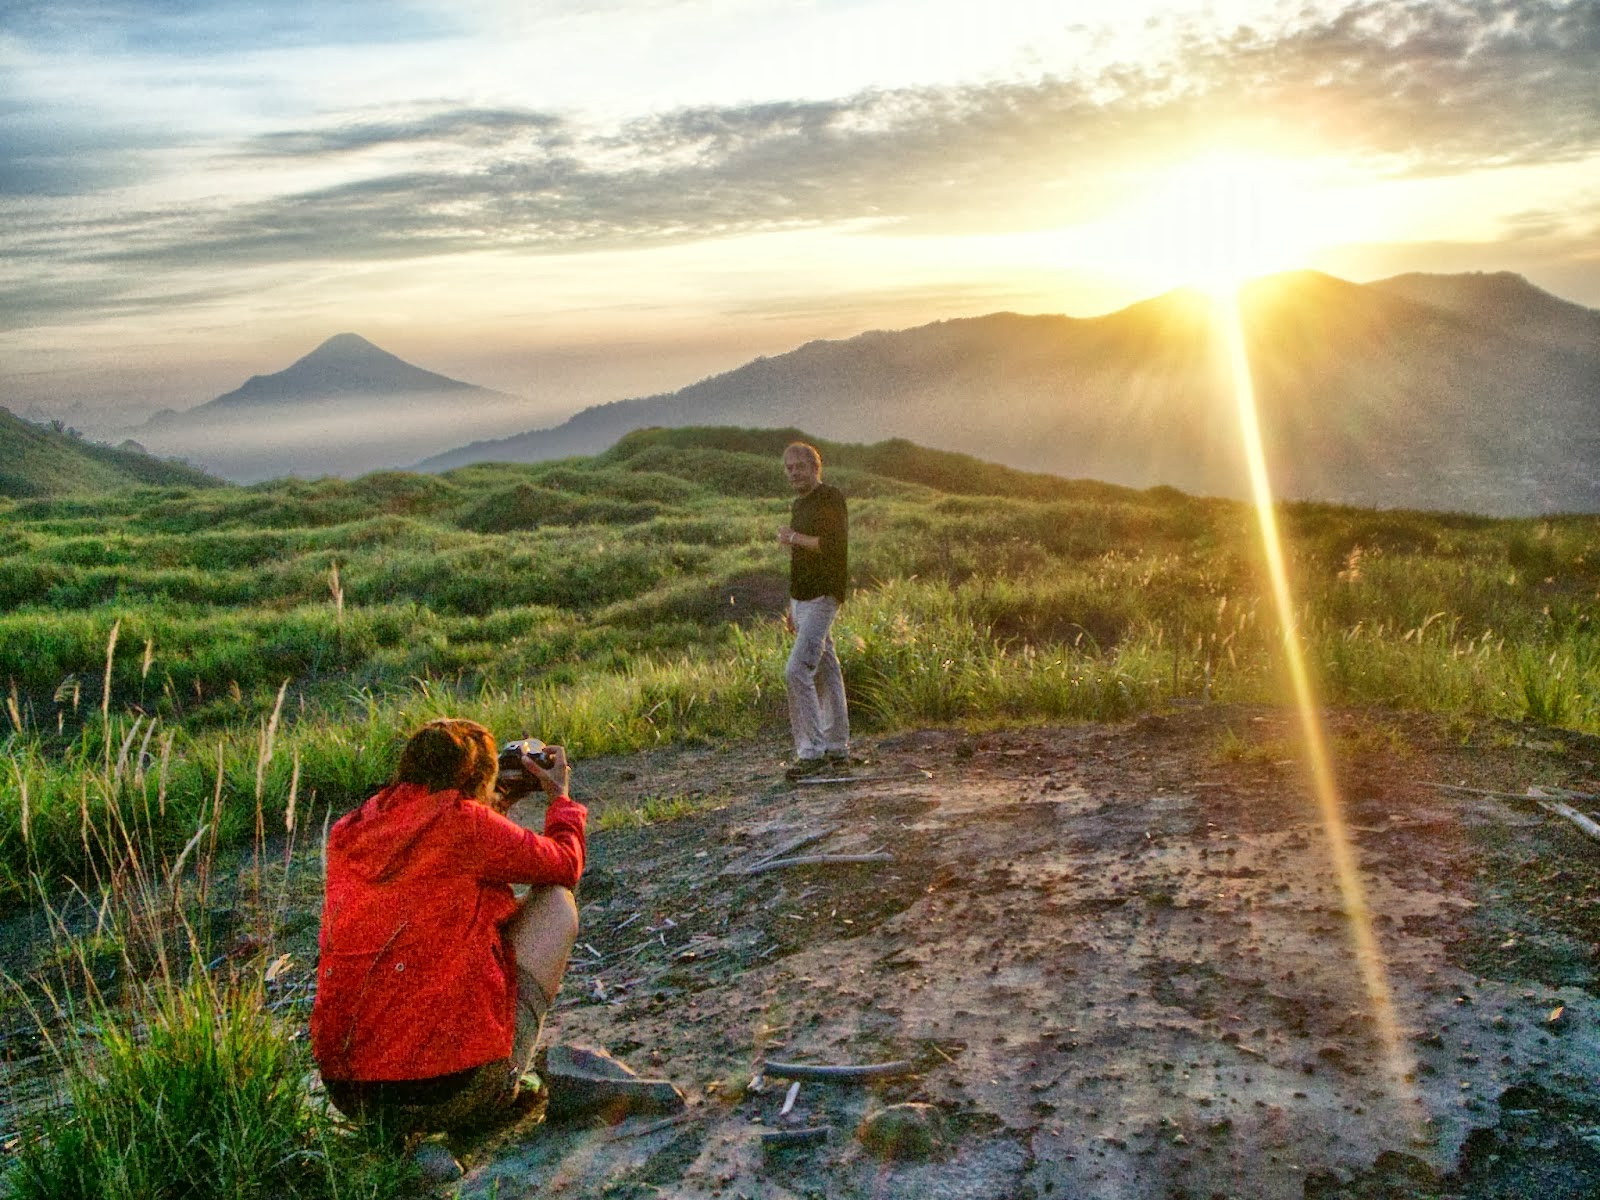 sulawesi volcanoes,highland and wildlife tour